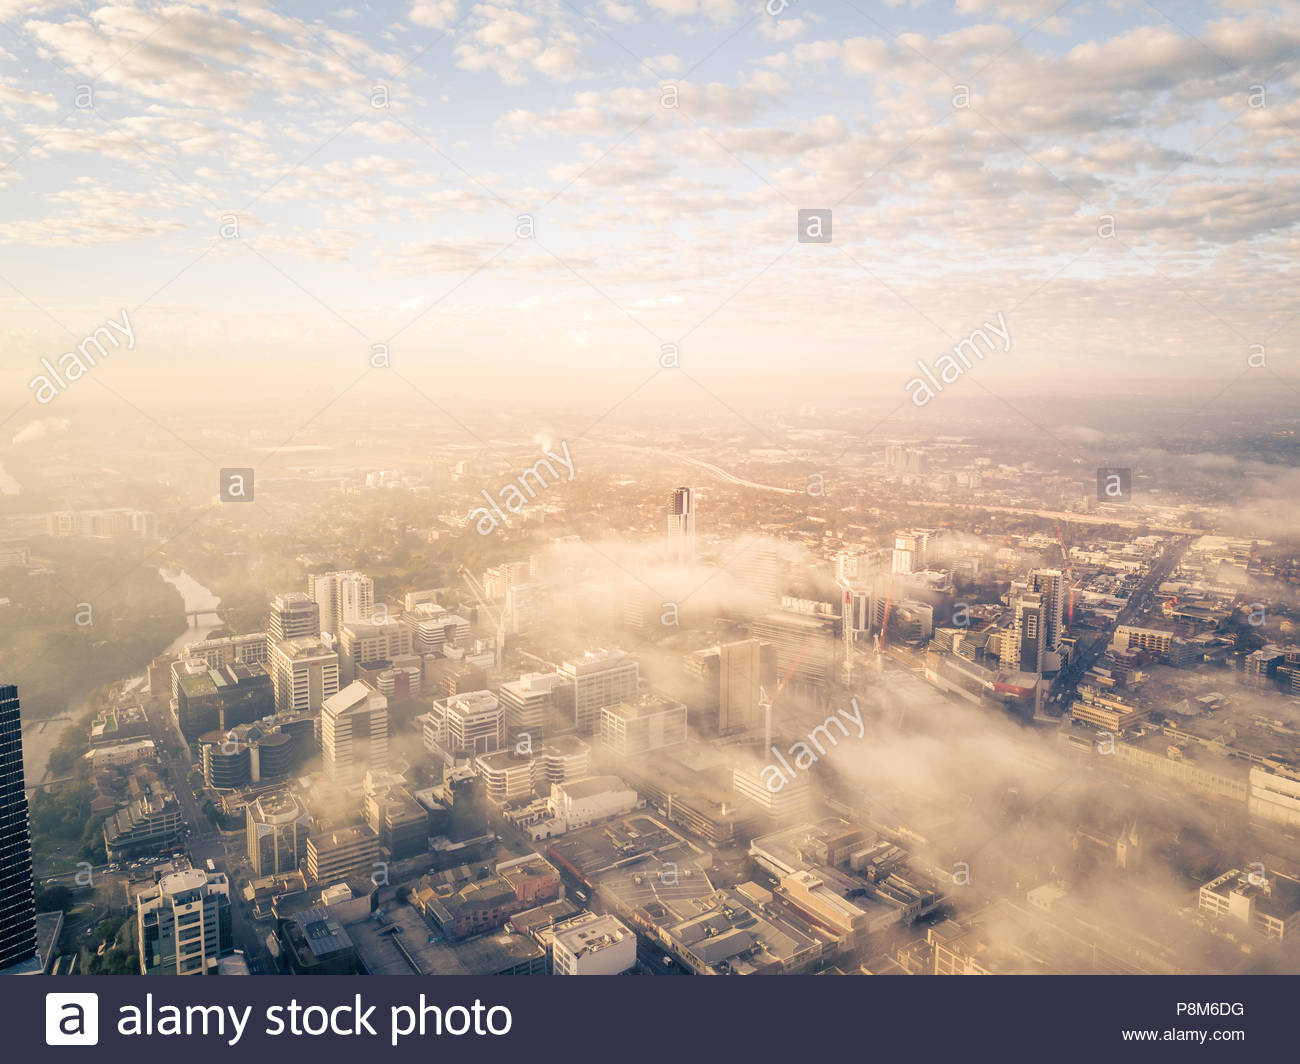 Drone aerial view of a misty foggy morning in a bustling downtown central business district - Stock Image